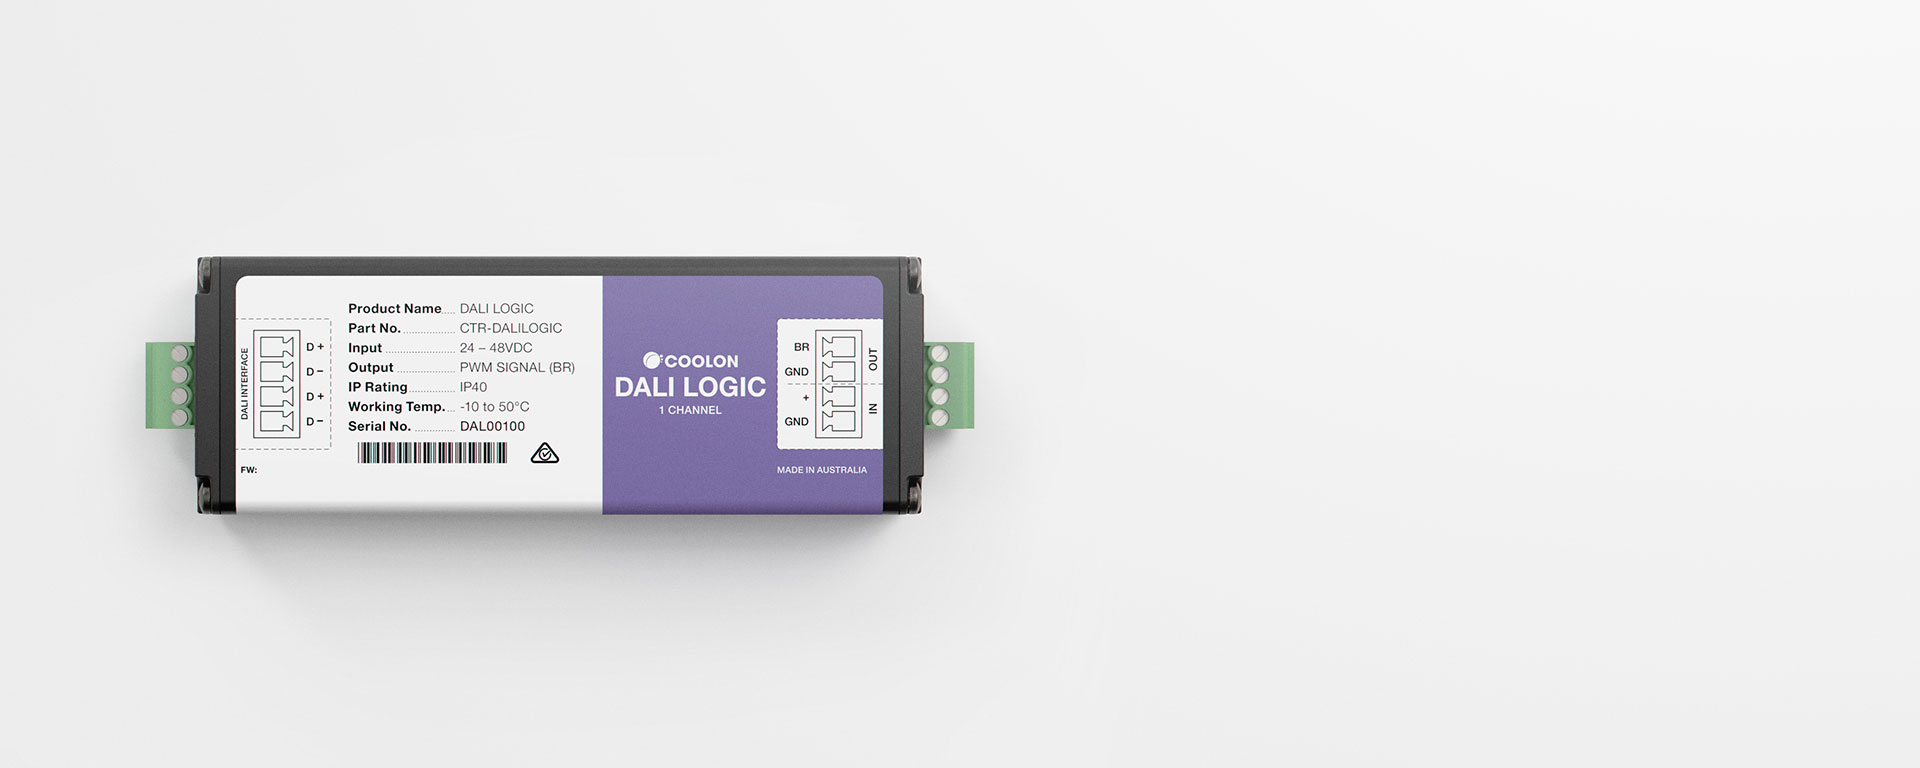 The DALI Logic driver is designed to suit DALI LED applications where using luminaries with PWM (brightness) control input. A compact design allows it to be installed in the smallest of spaces.